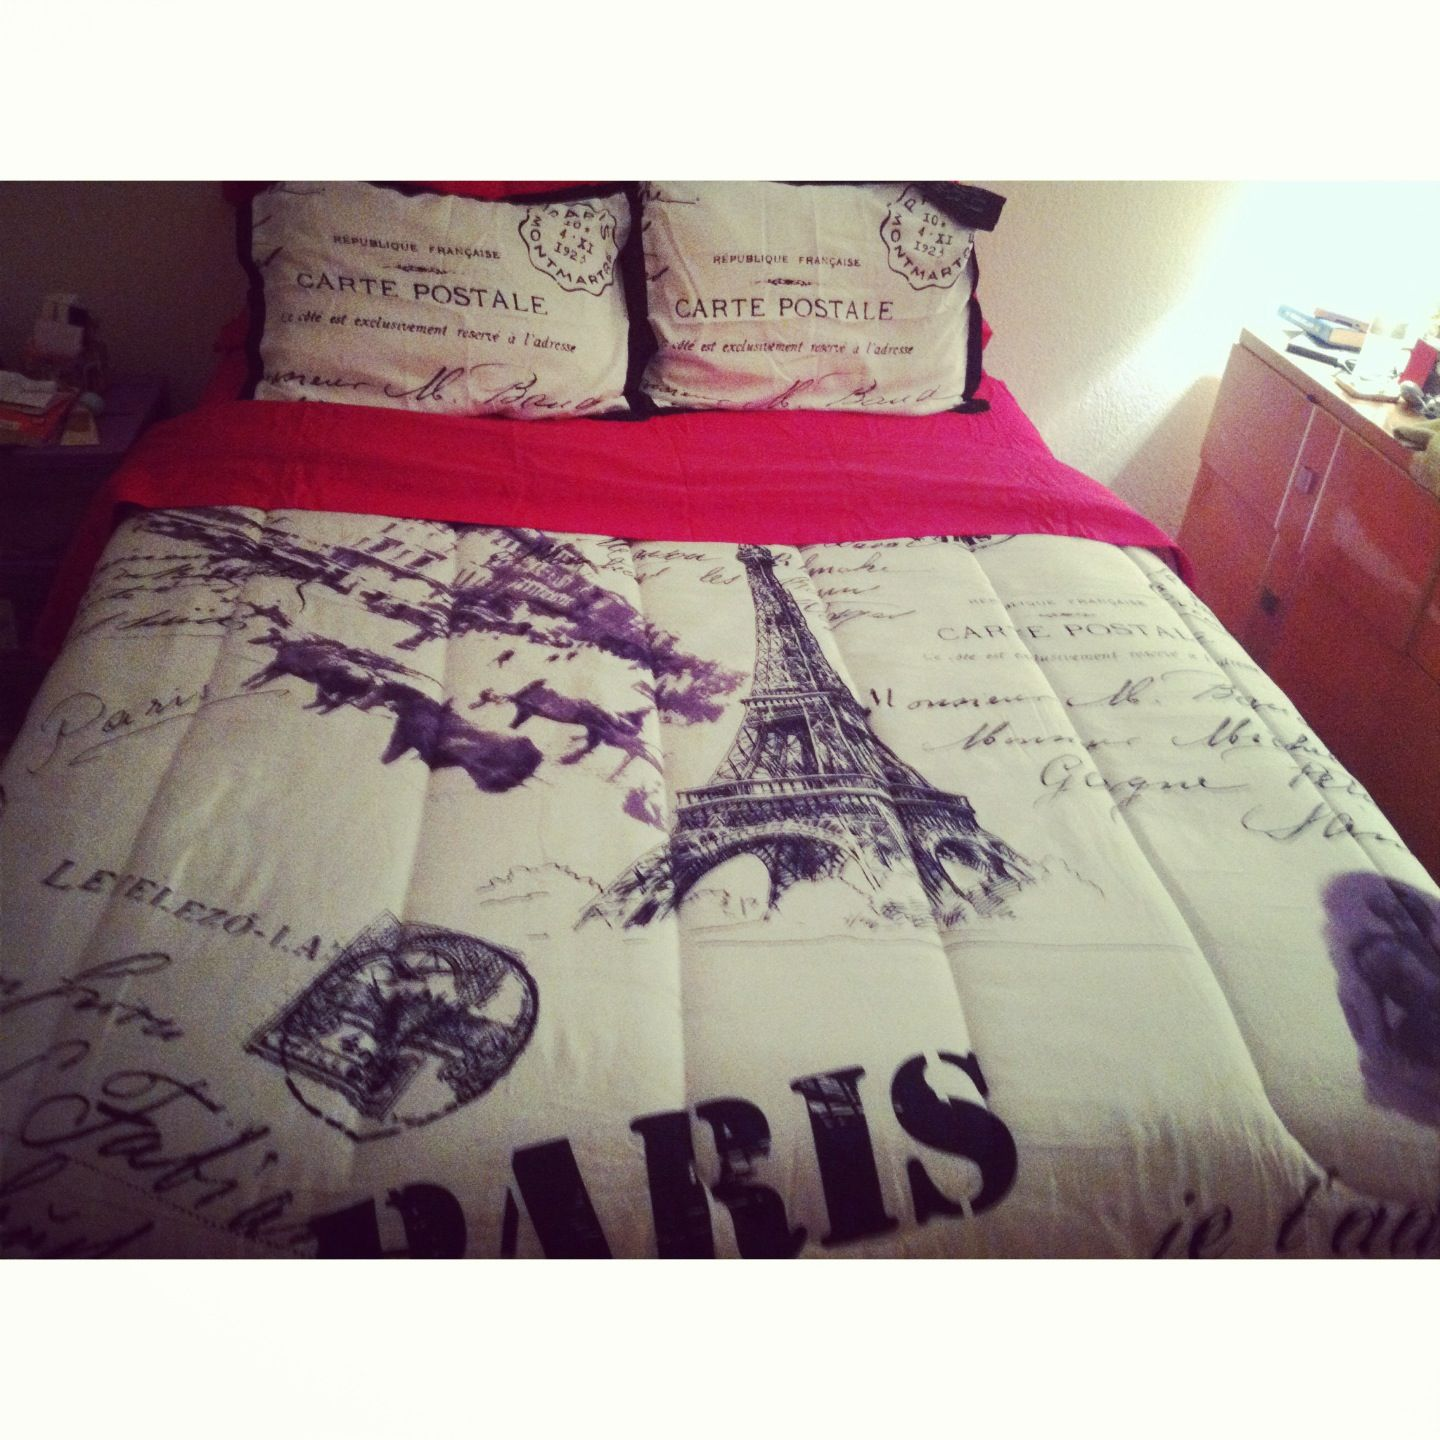 my new paris bedspread from anna's linen. (pink sheets are from